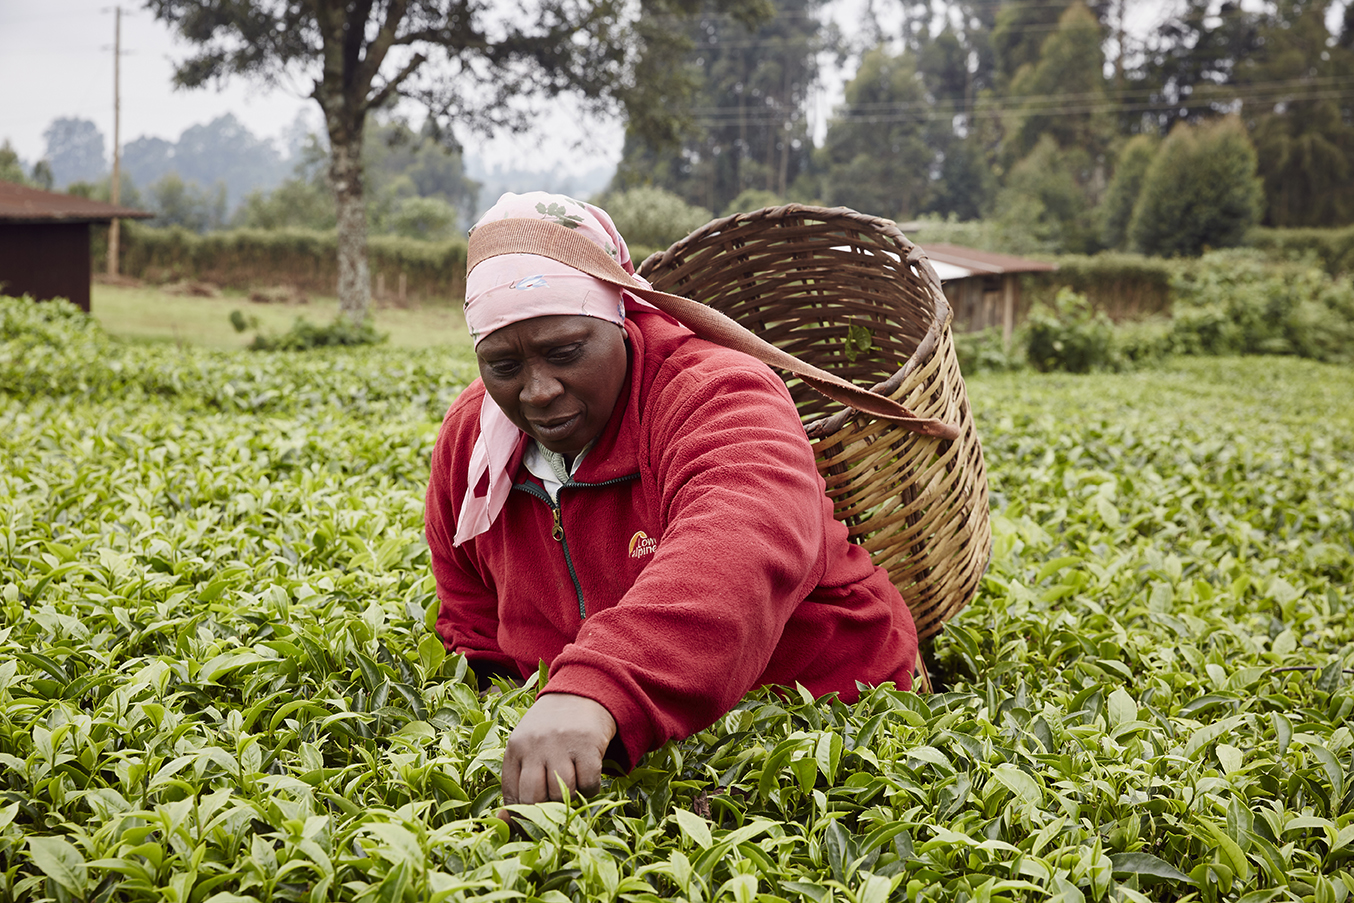 Alice is a farmer from Makomboki, Kenya. She has been working in the tea industry for 30 years and makes the majority of her income selling green tea leaves. She picks with her family all year round and is able to employ casual workers during peak season.